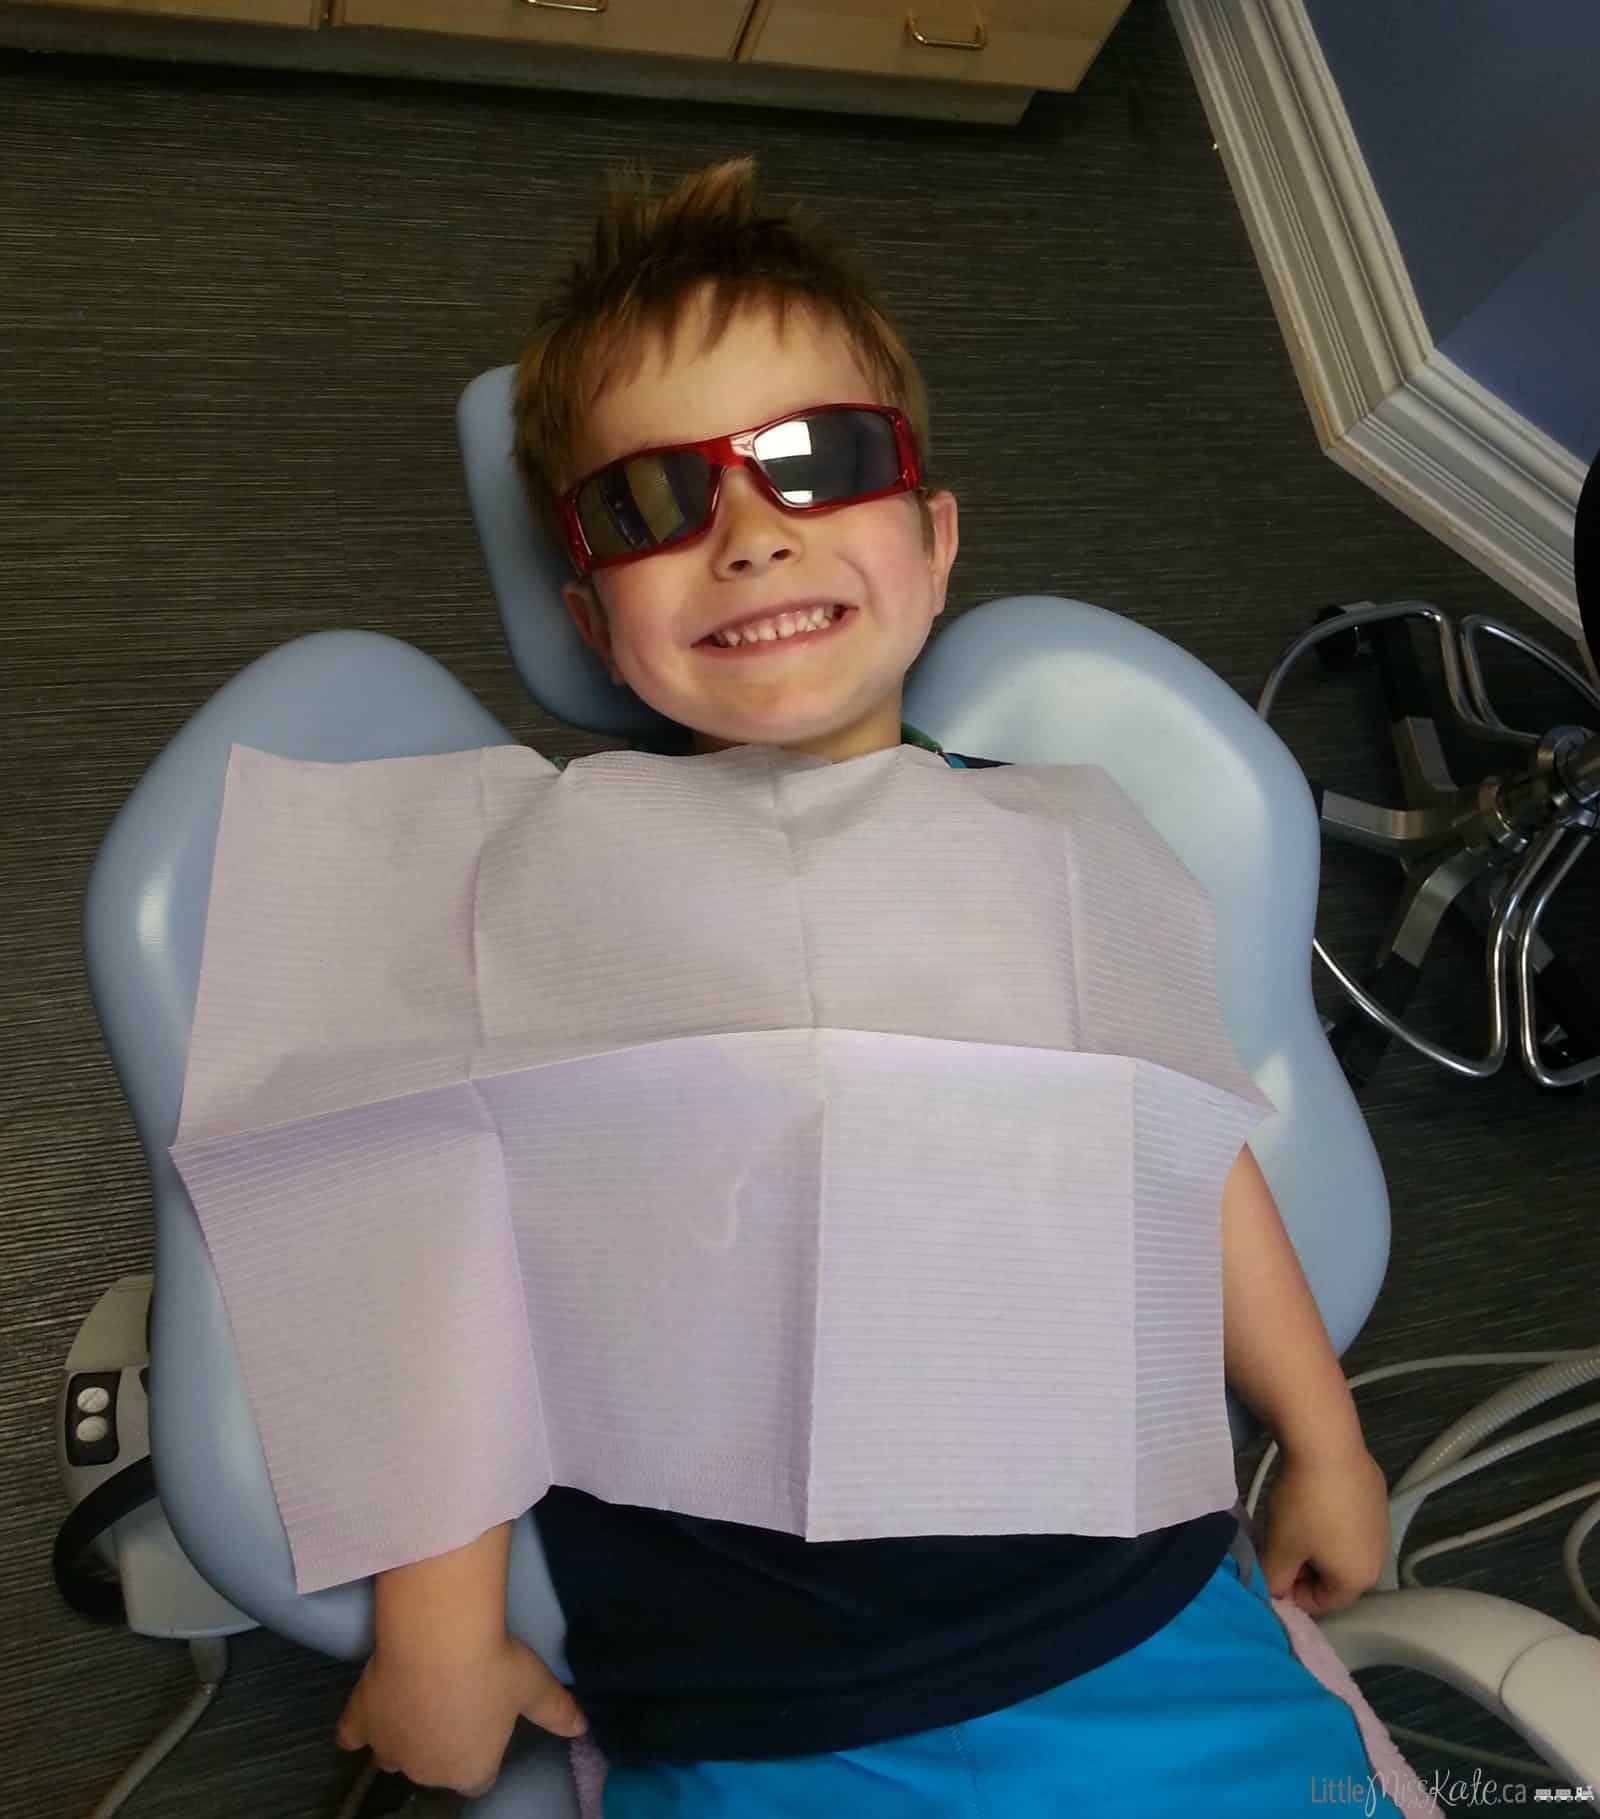 4 year old at the dentist